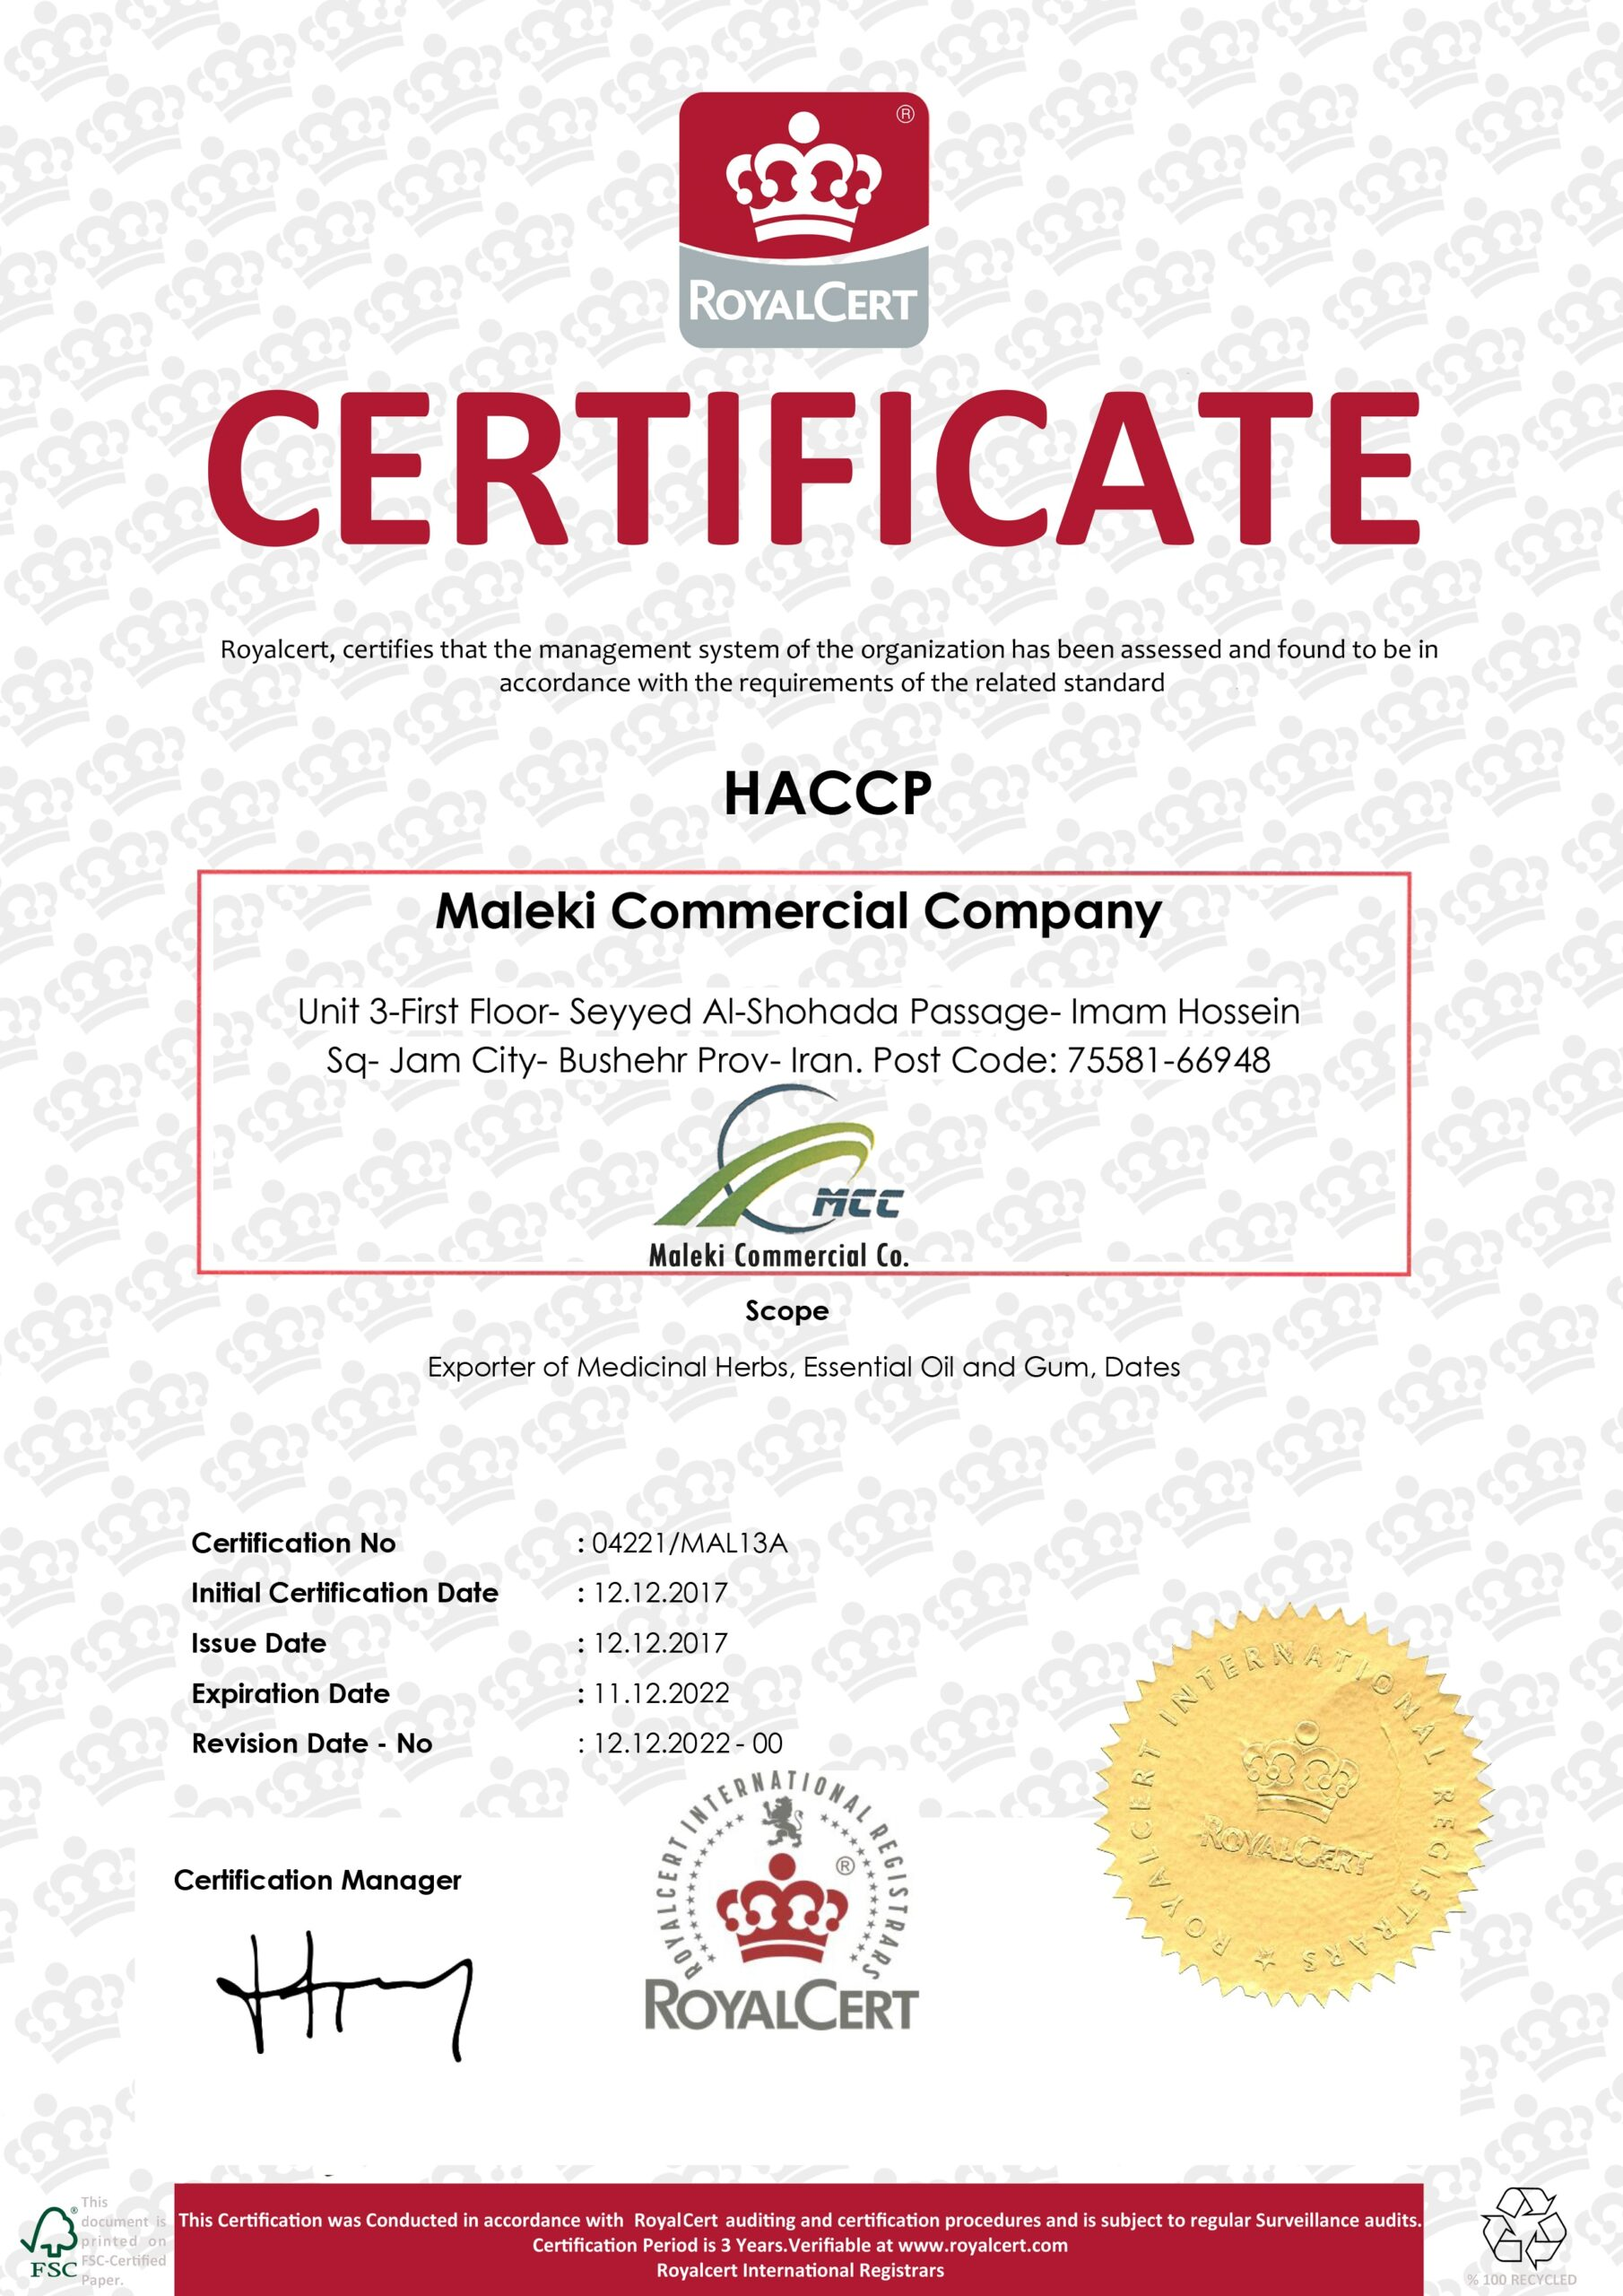 HACCP Certificate Export of Herb essential oil - Maleki Commercial Co.